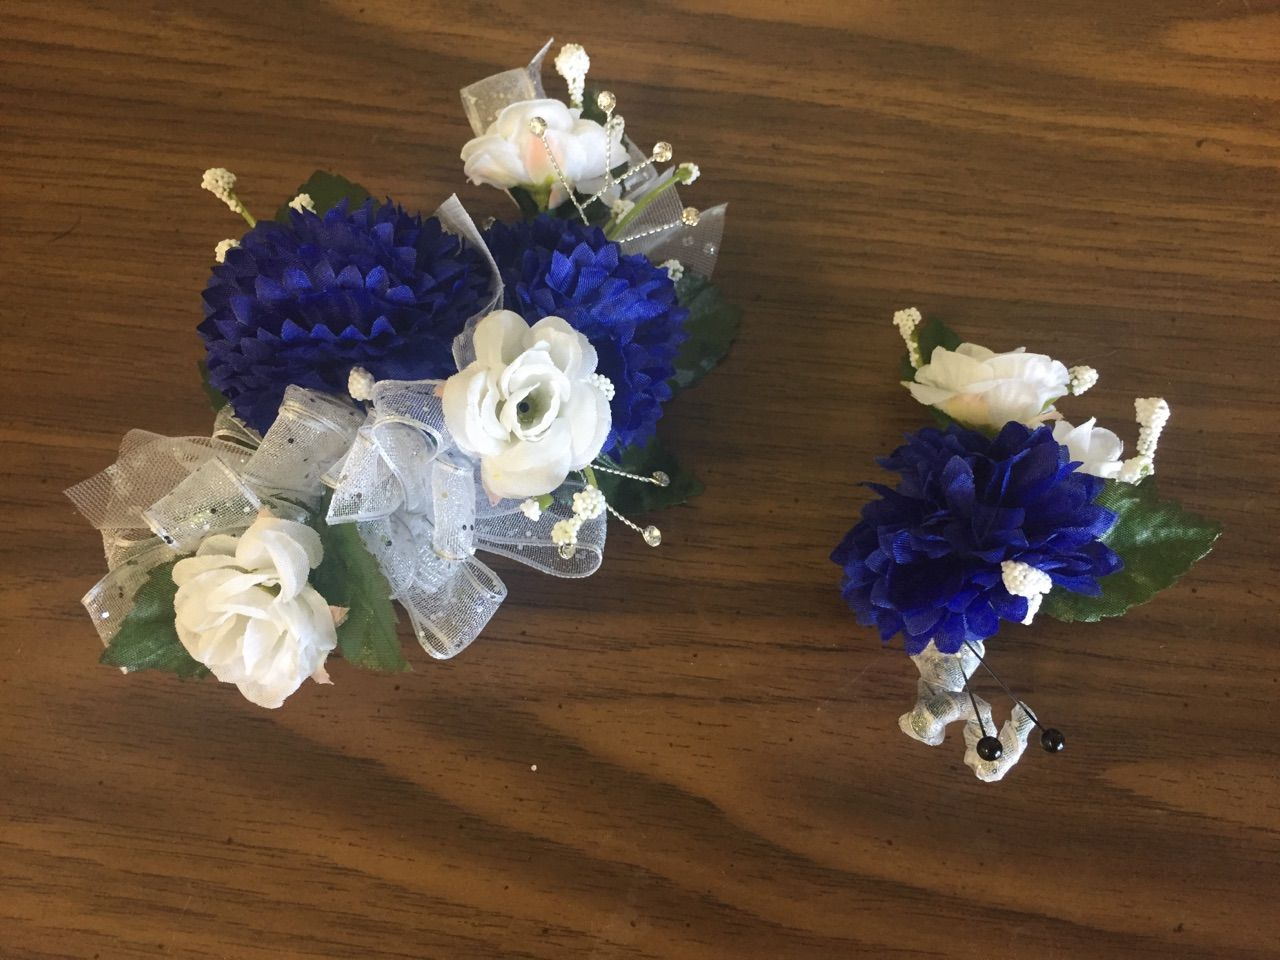 Corsages and boutonnieres glendale peoria phoenix az 85051 we also specialize in silk flower corsages that will last a lifetime izmirmasajfo